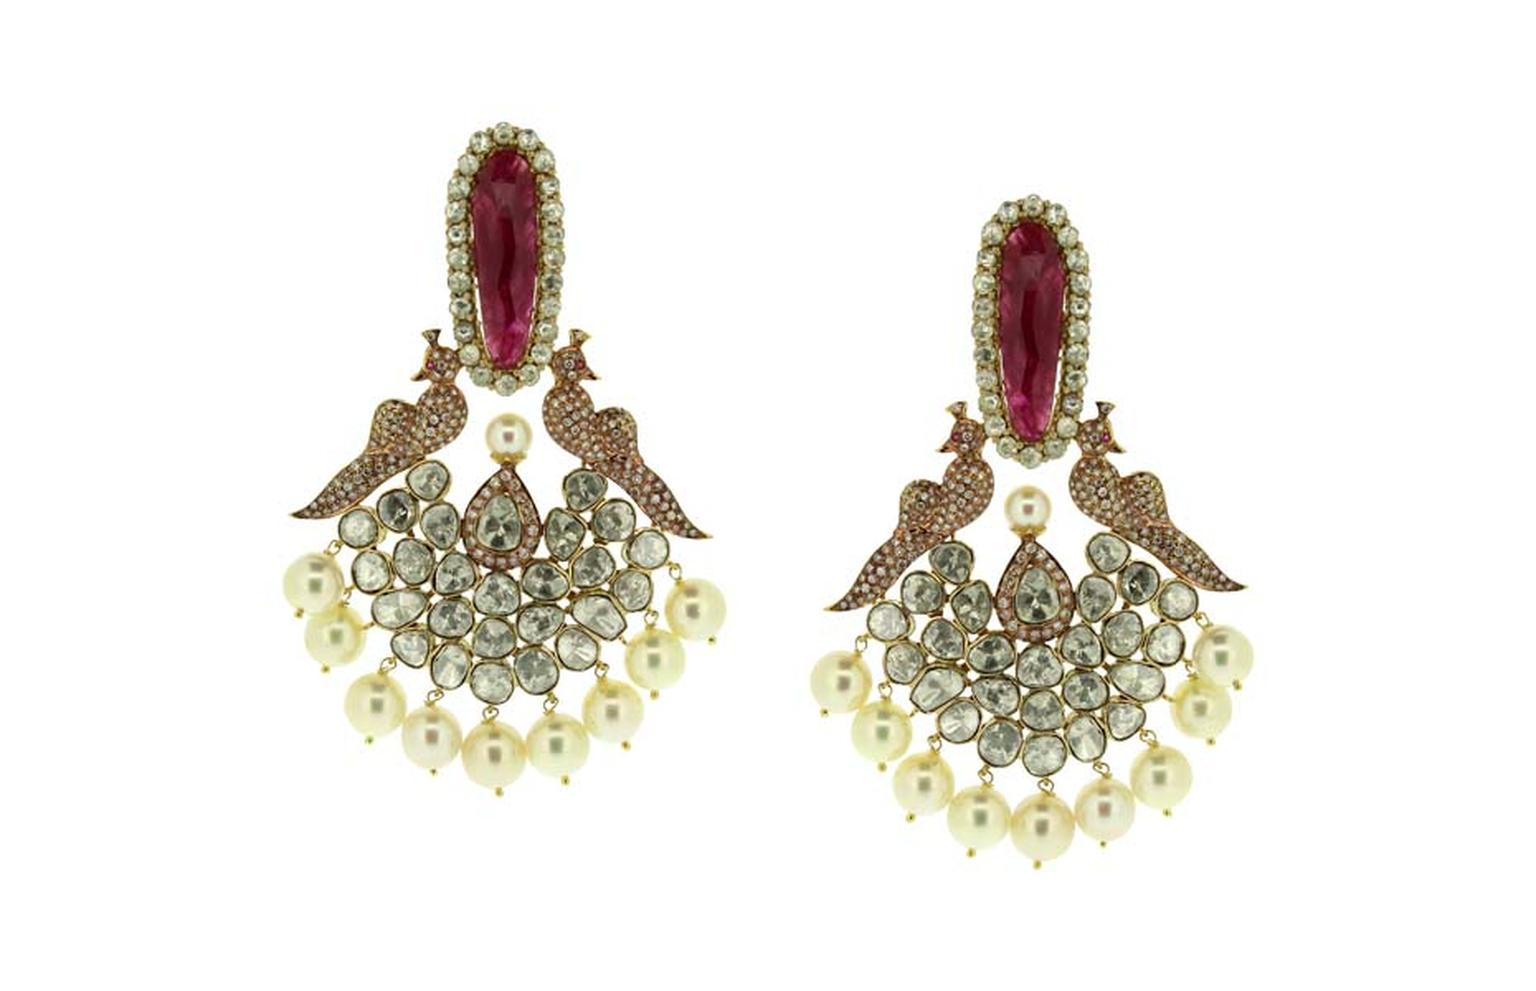 Birdhichand Ghanshyamdas Aks collection Peacock earrings.